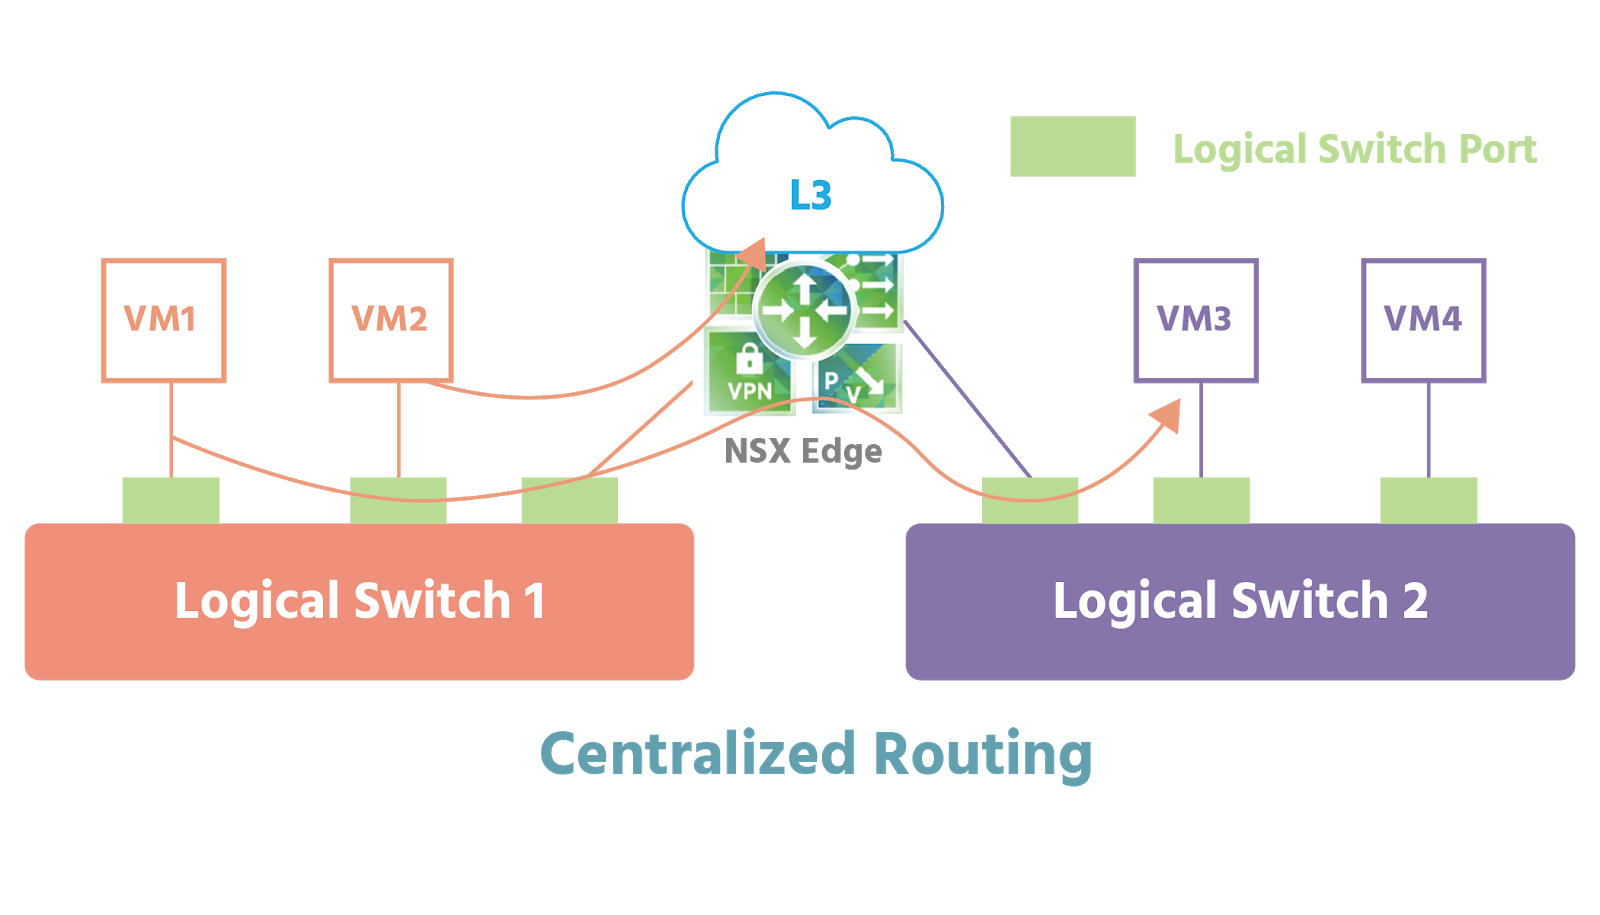 Logical switch 1 has three ports: two are connected to VM1 and VM2; one is connected to an NSX Edge. Logical switch 2 also has three ports: one is connected to the same NSX Edge; the other two are connected to VM3 and VM4. The NSX Edge is also connected to a Layer 3 network. VM1 from logical switch 1 and VM3 from logical switch 2 are shown sharing data. VM2 from logical switch 1 is shown sharing data through the Layer 3 network and out towards another.